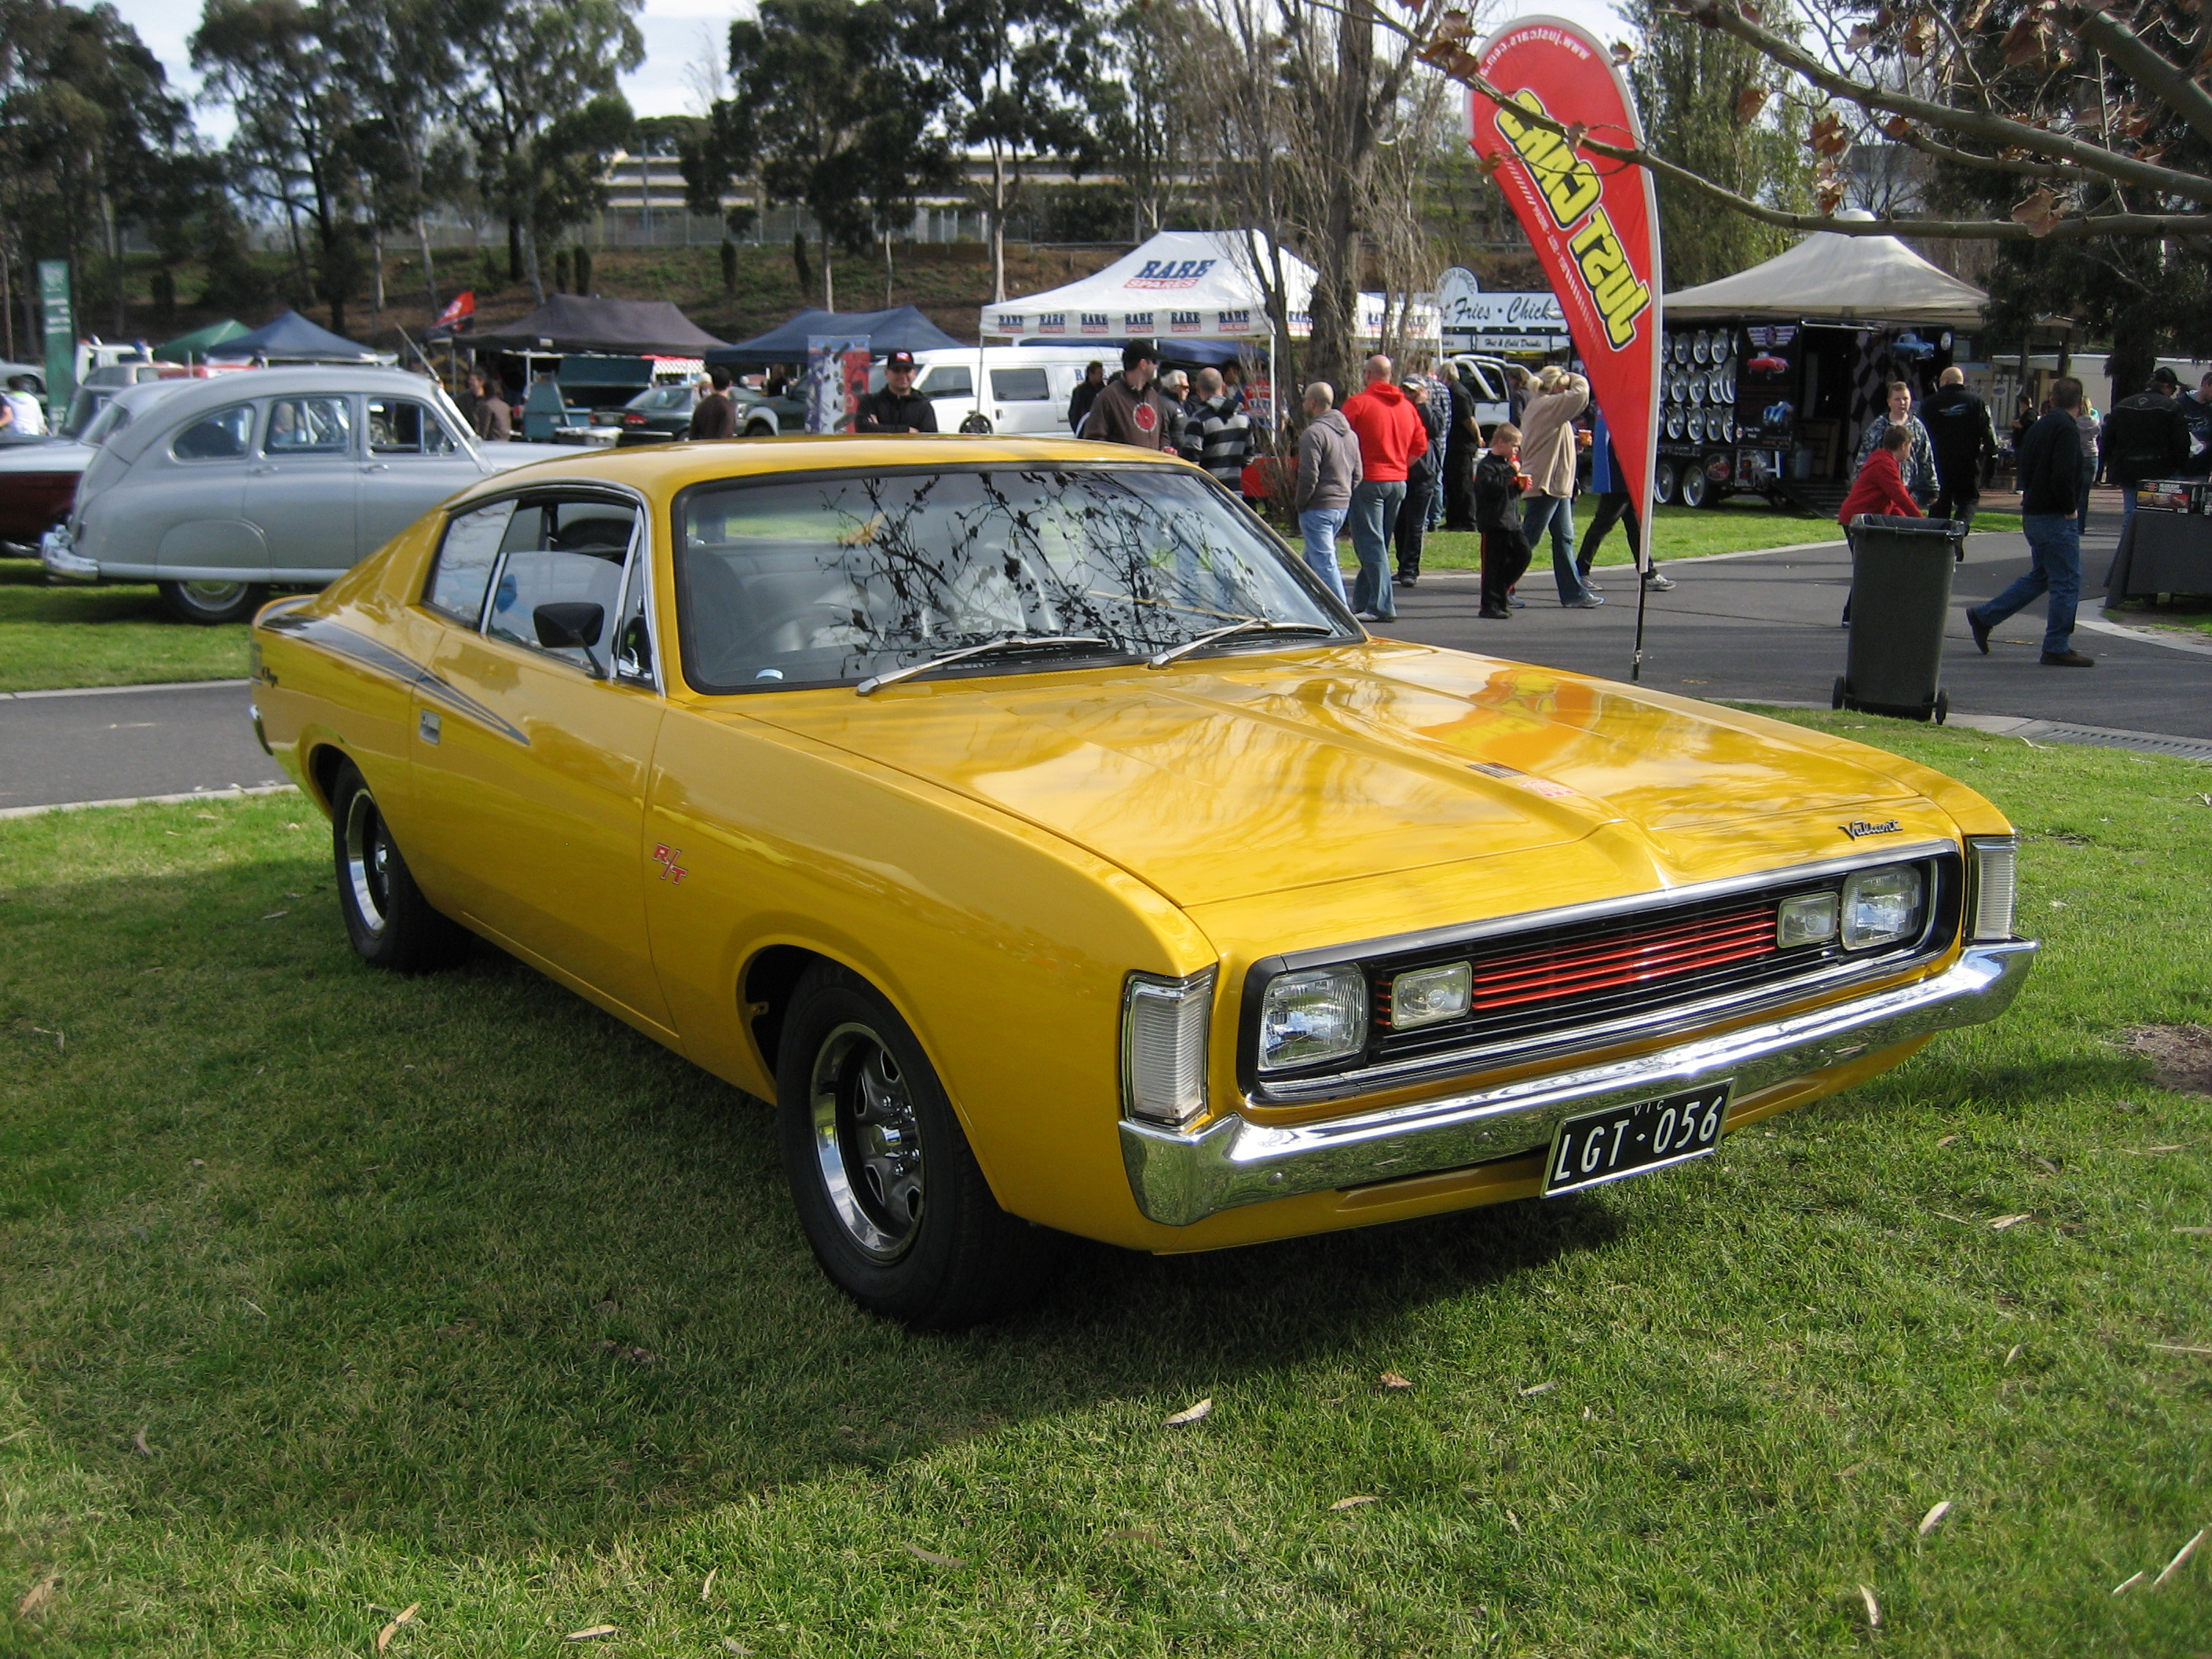 Those guys who are too young to remember the australian chrysler charger, there is a pic attached